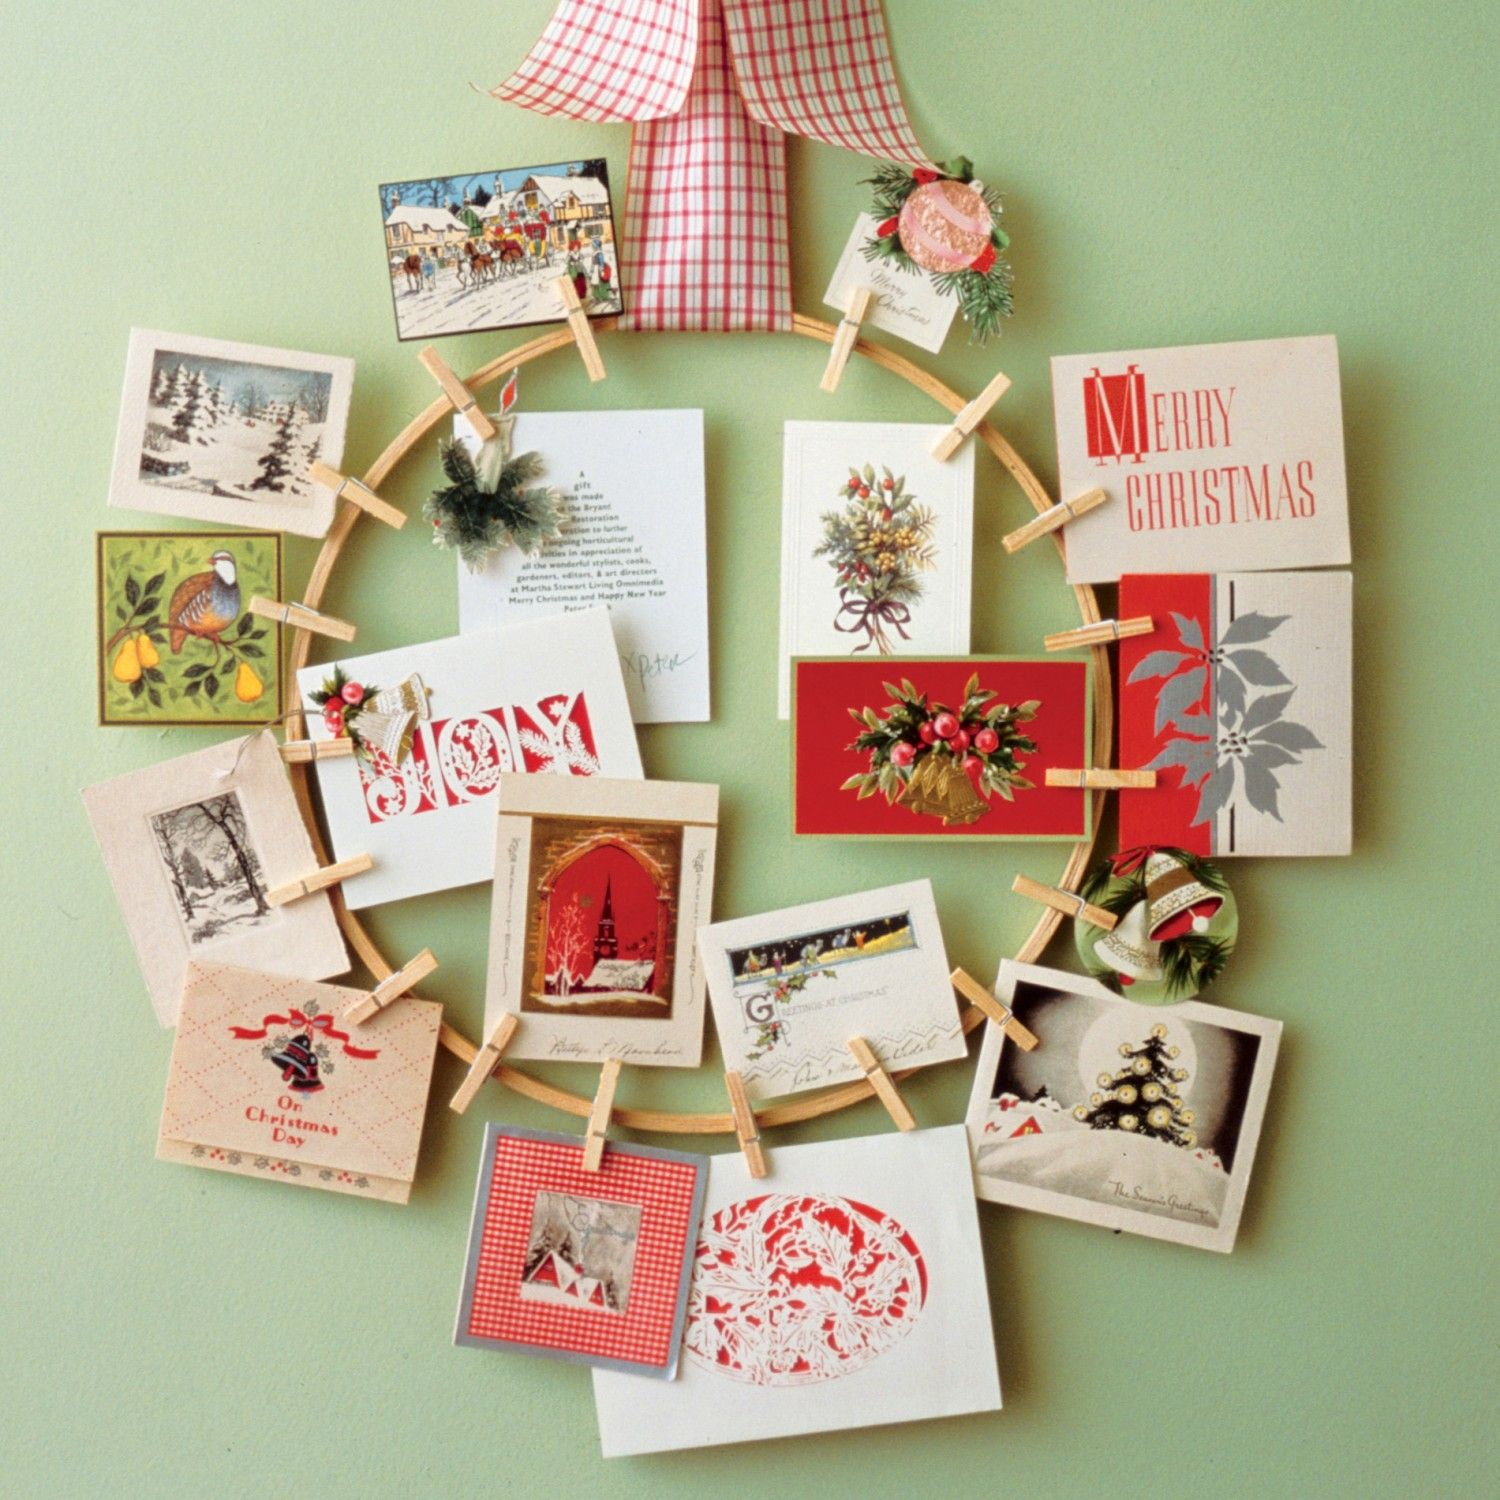 Decorate a wall or an interior door by hanging a holiday-card wreath.